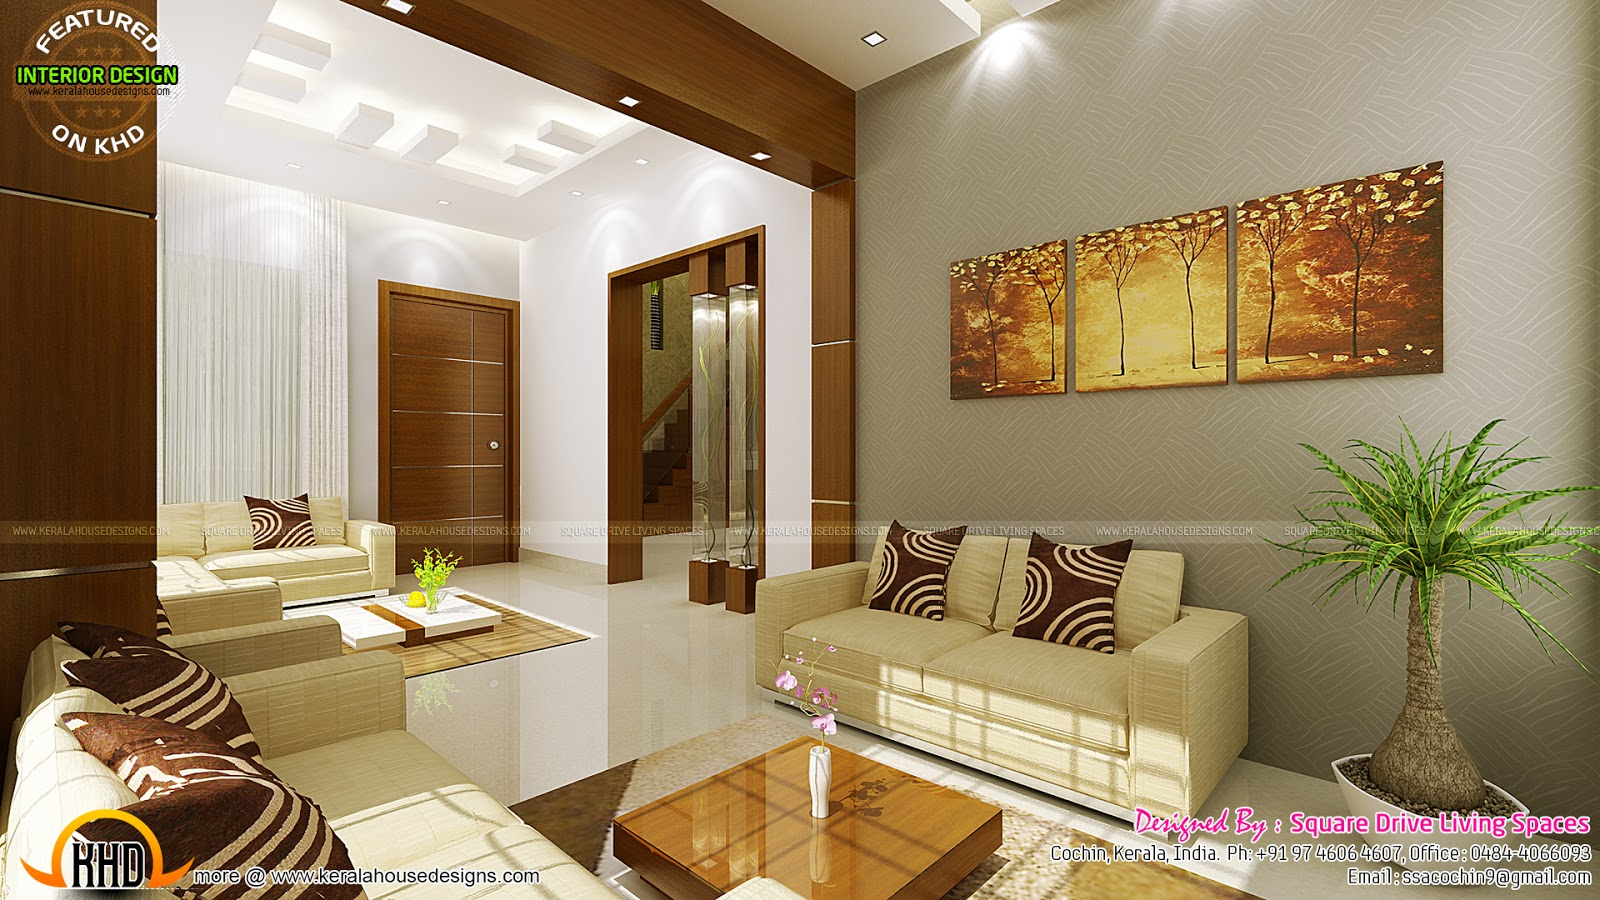 Contemporary kitchen dining and living room kerala home for Complete house interior design